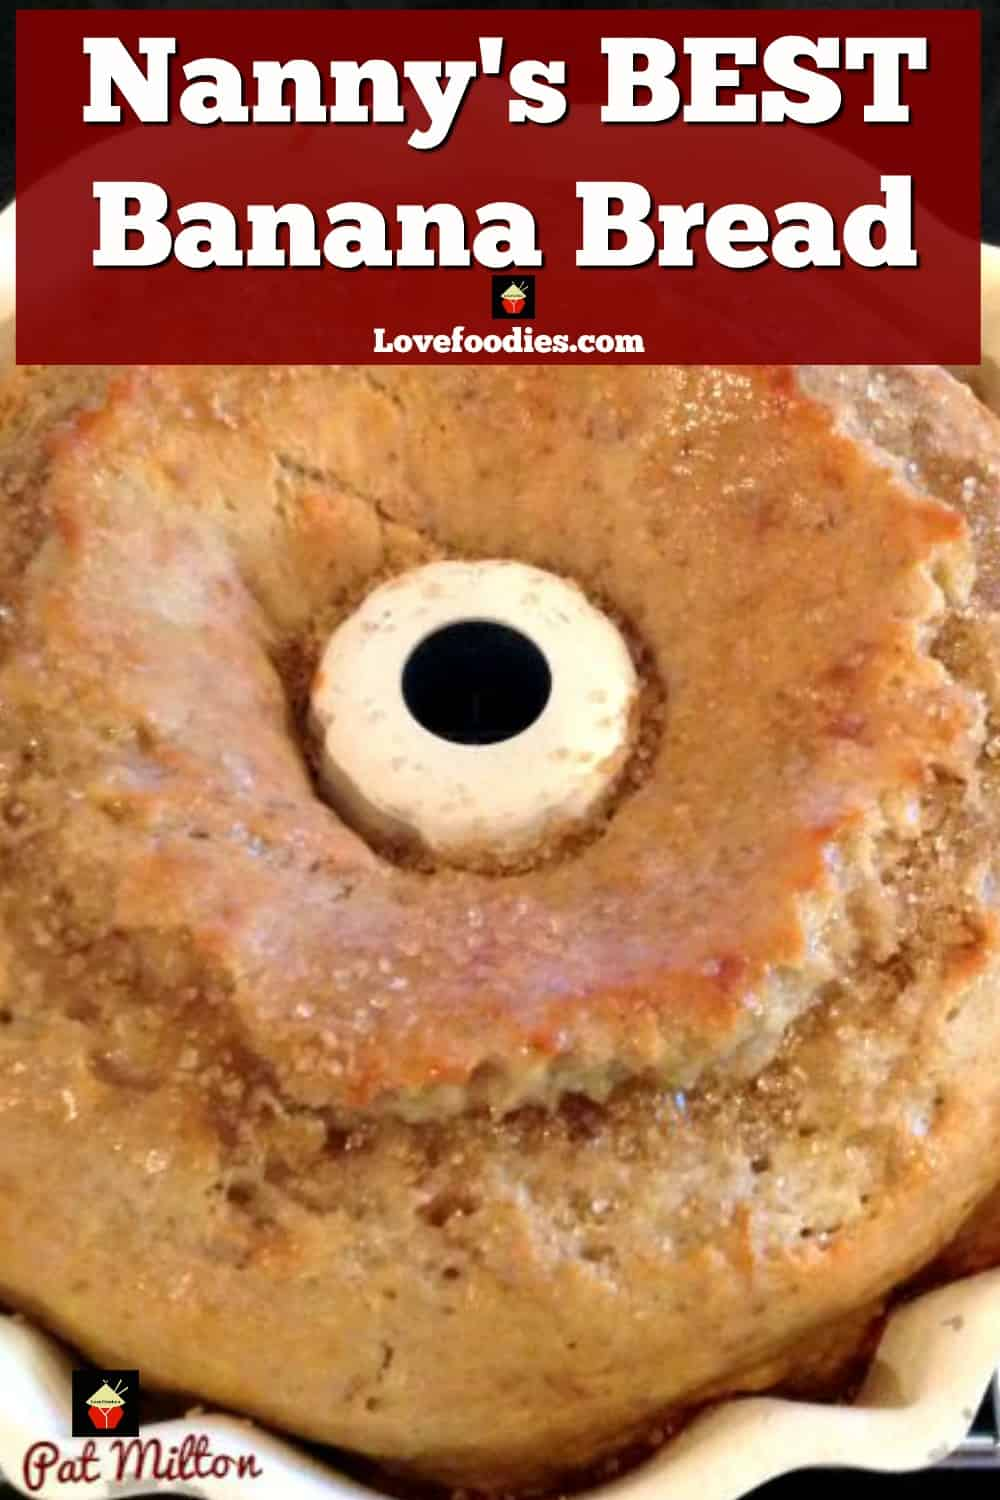 Nanny's BEST Banana Bread is a lovely soft, moist cake and absolutely delicious with the glaze poured over! A nice, easy recipe and freezer friendly too!